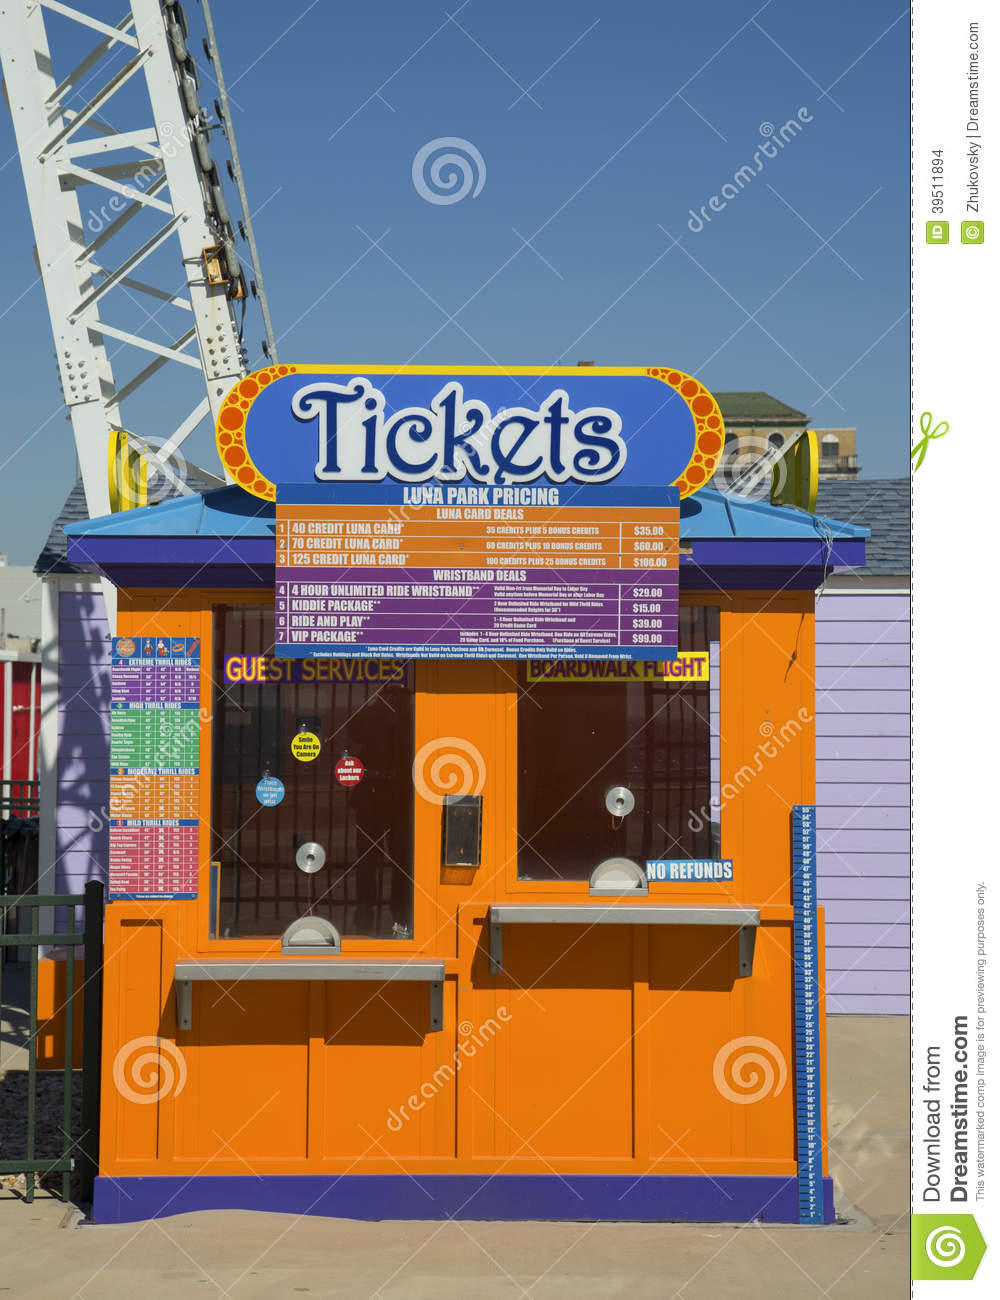 ticket booth at coney island luna park in brooklyn movie ticket clip art carnival movie ticket clip art free